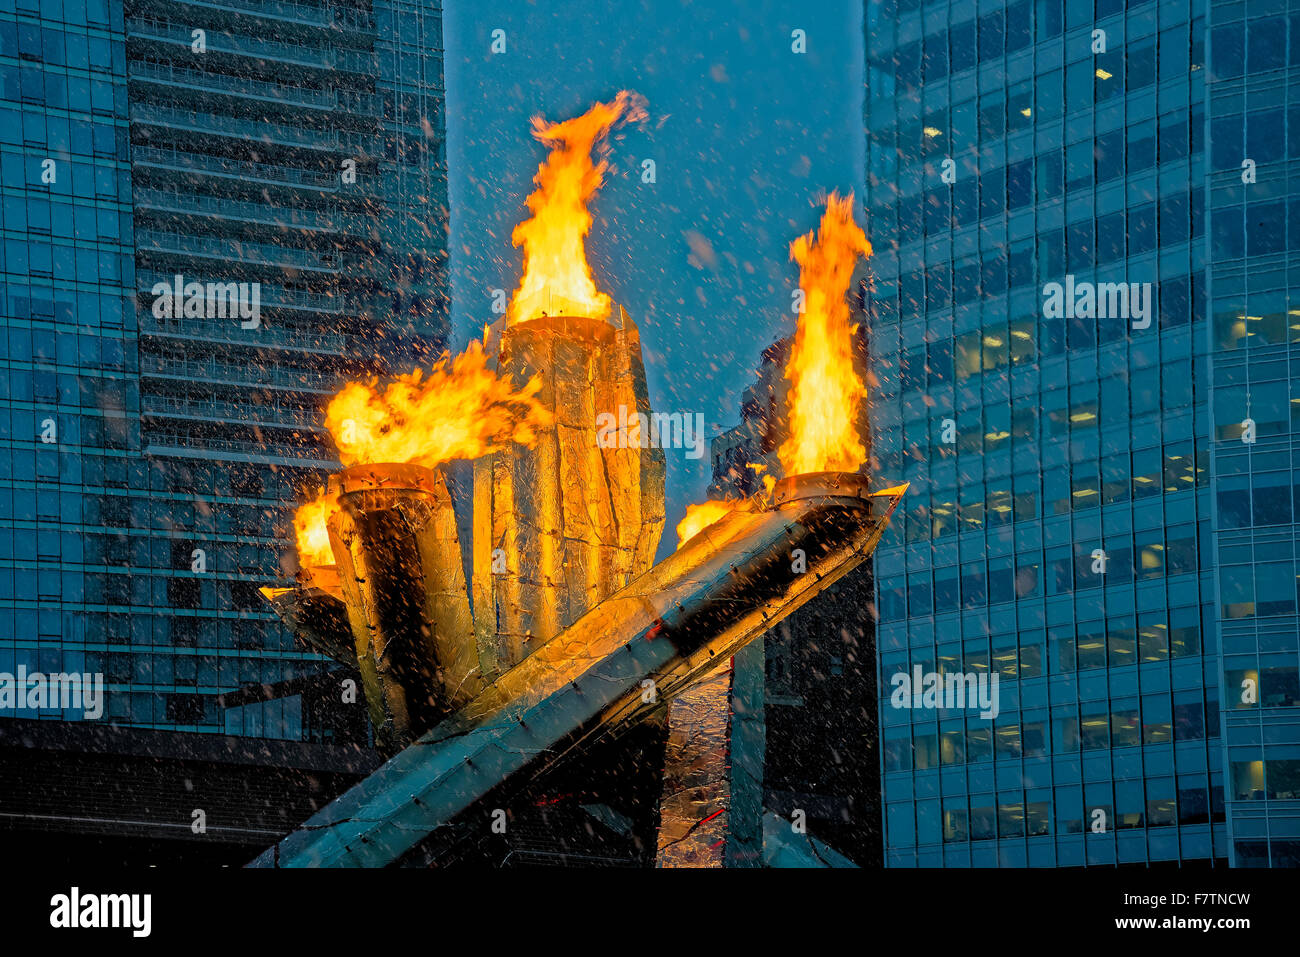 Vancouver celebrates the 2014 Olympic Hockey gold medals by lighting the 2010 Olympic flame cauldron, Vancouver, - Stock Image